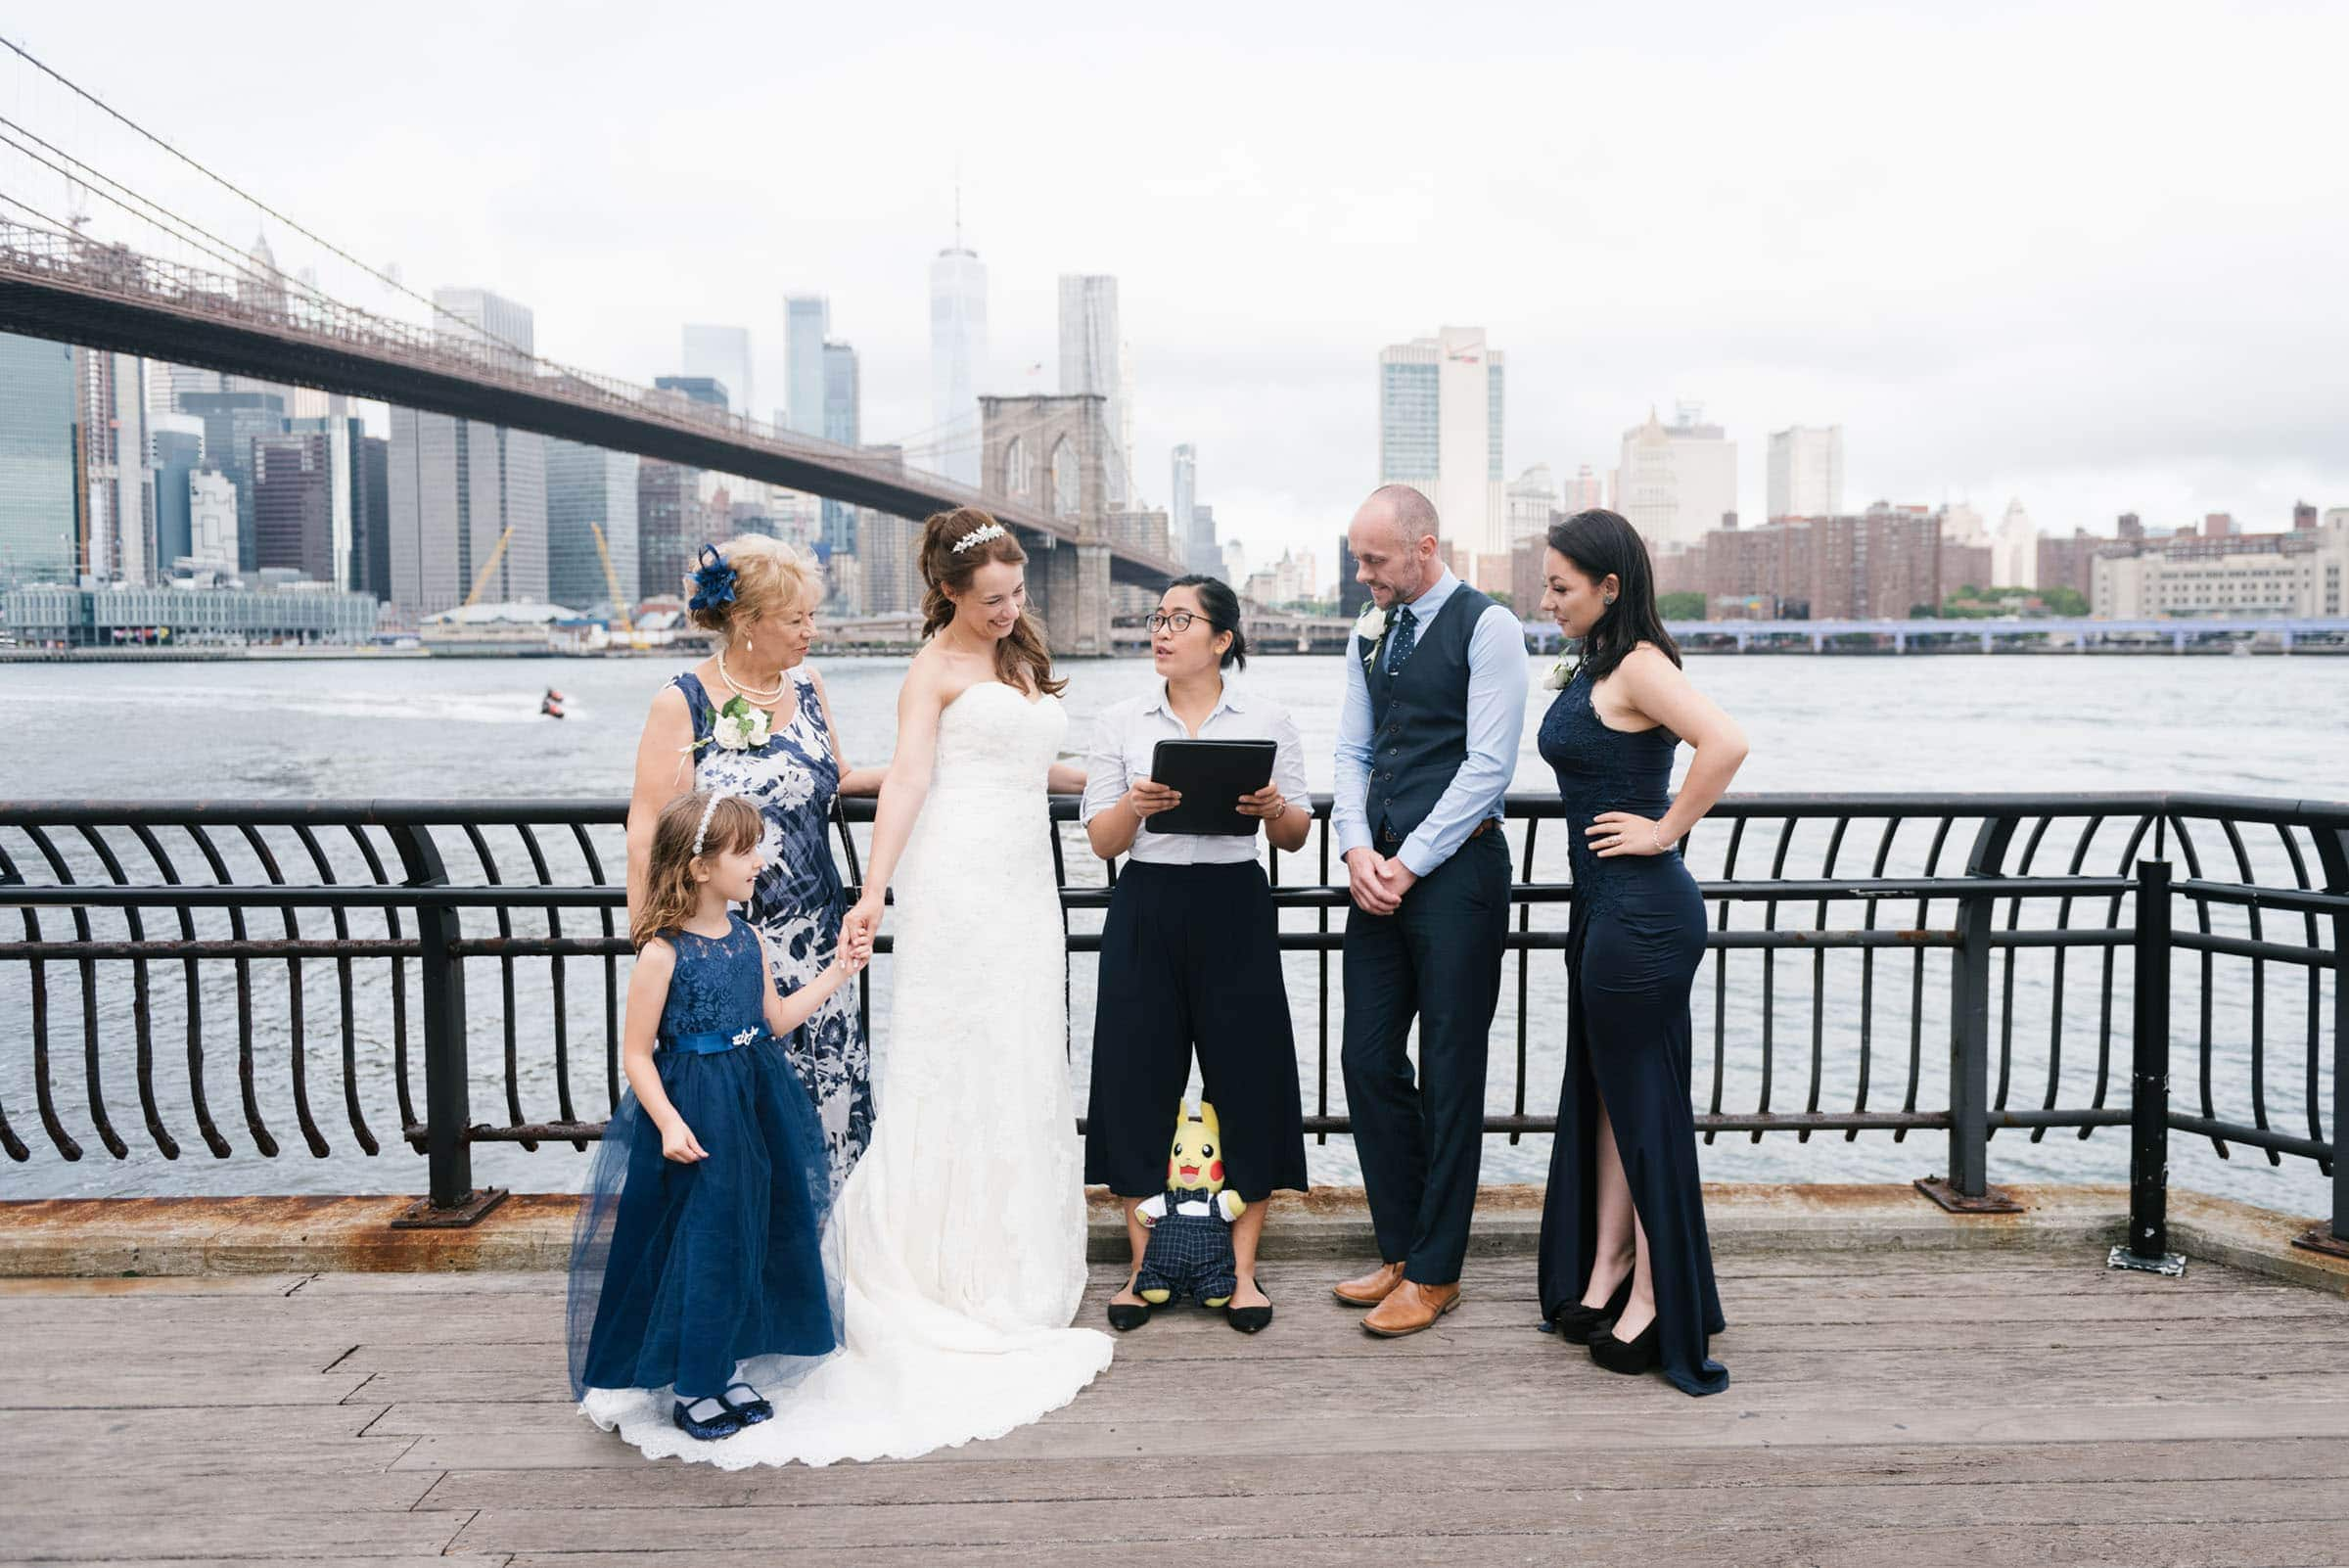 wedding officiant for NYC elopement in Brooklyn Bridge Park